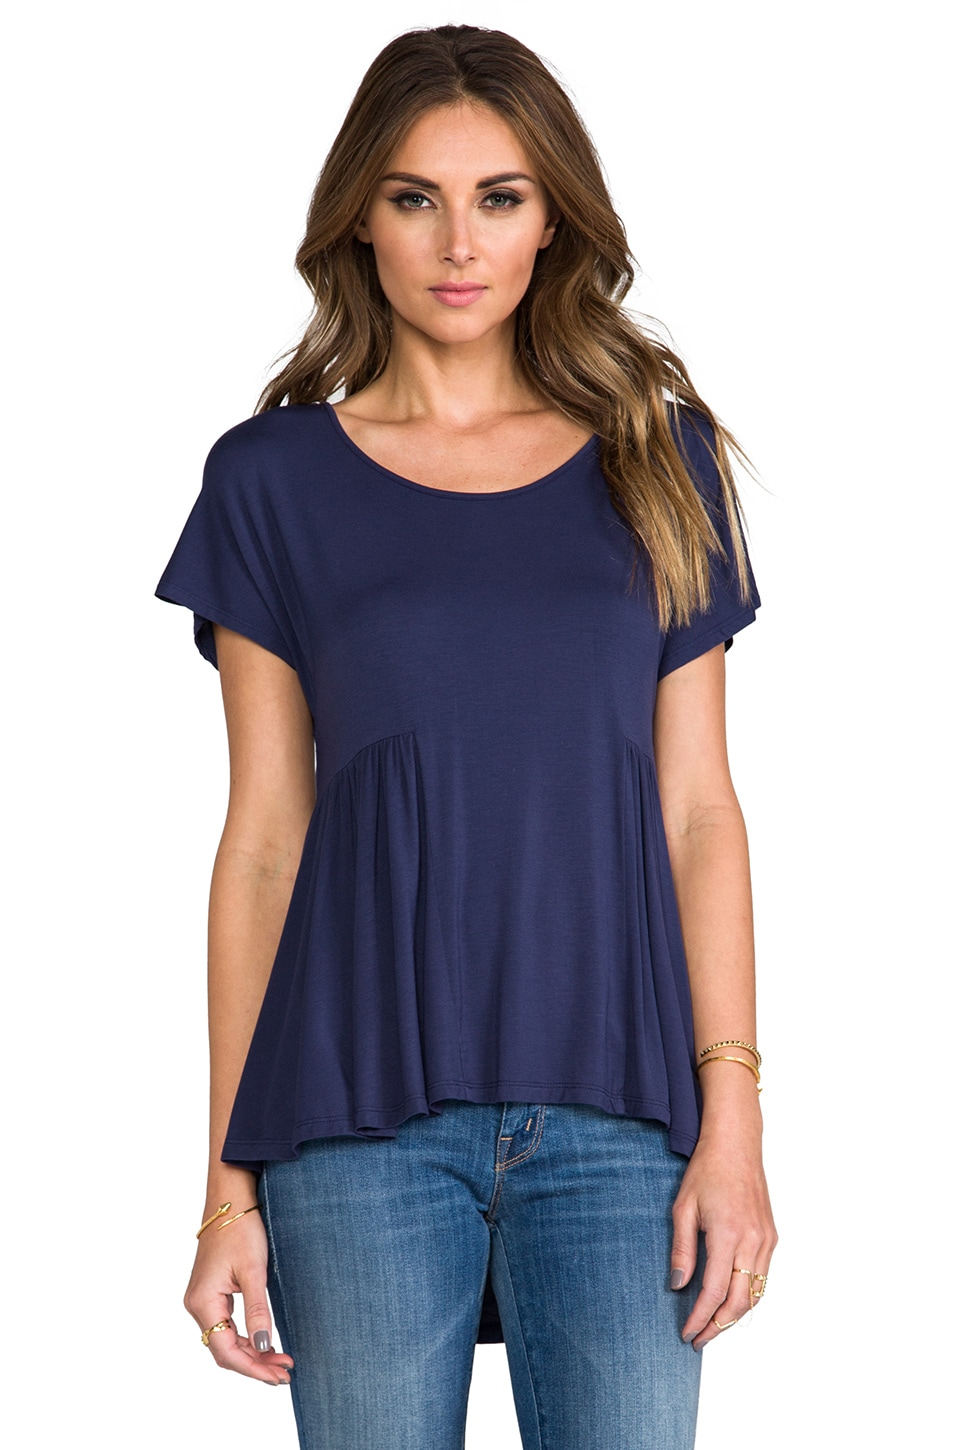 Lovers + Friends Take Me There Top in Navy